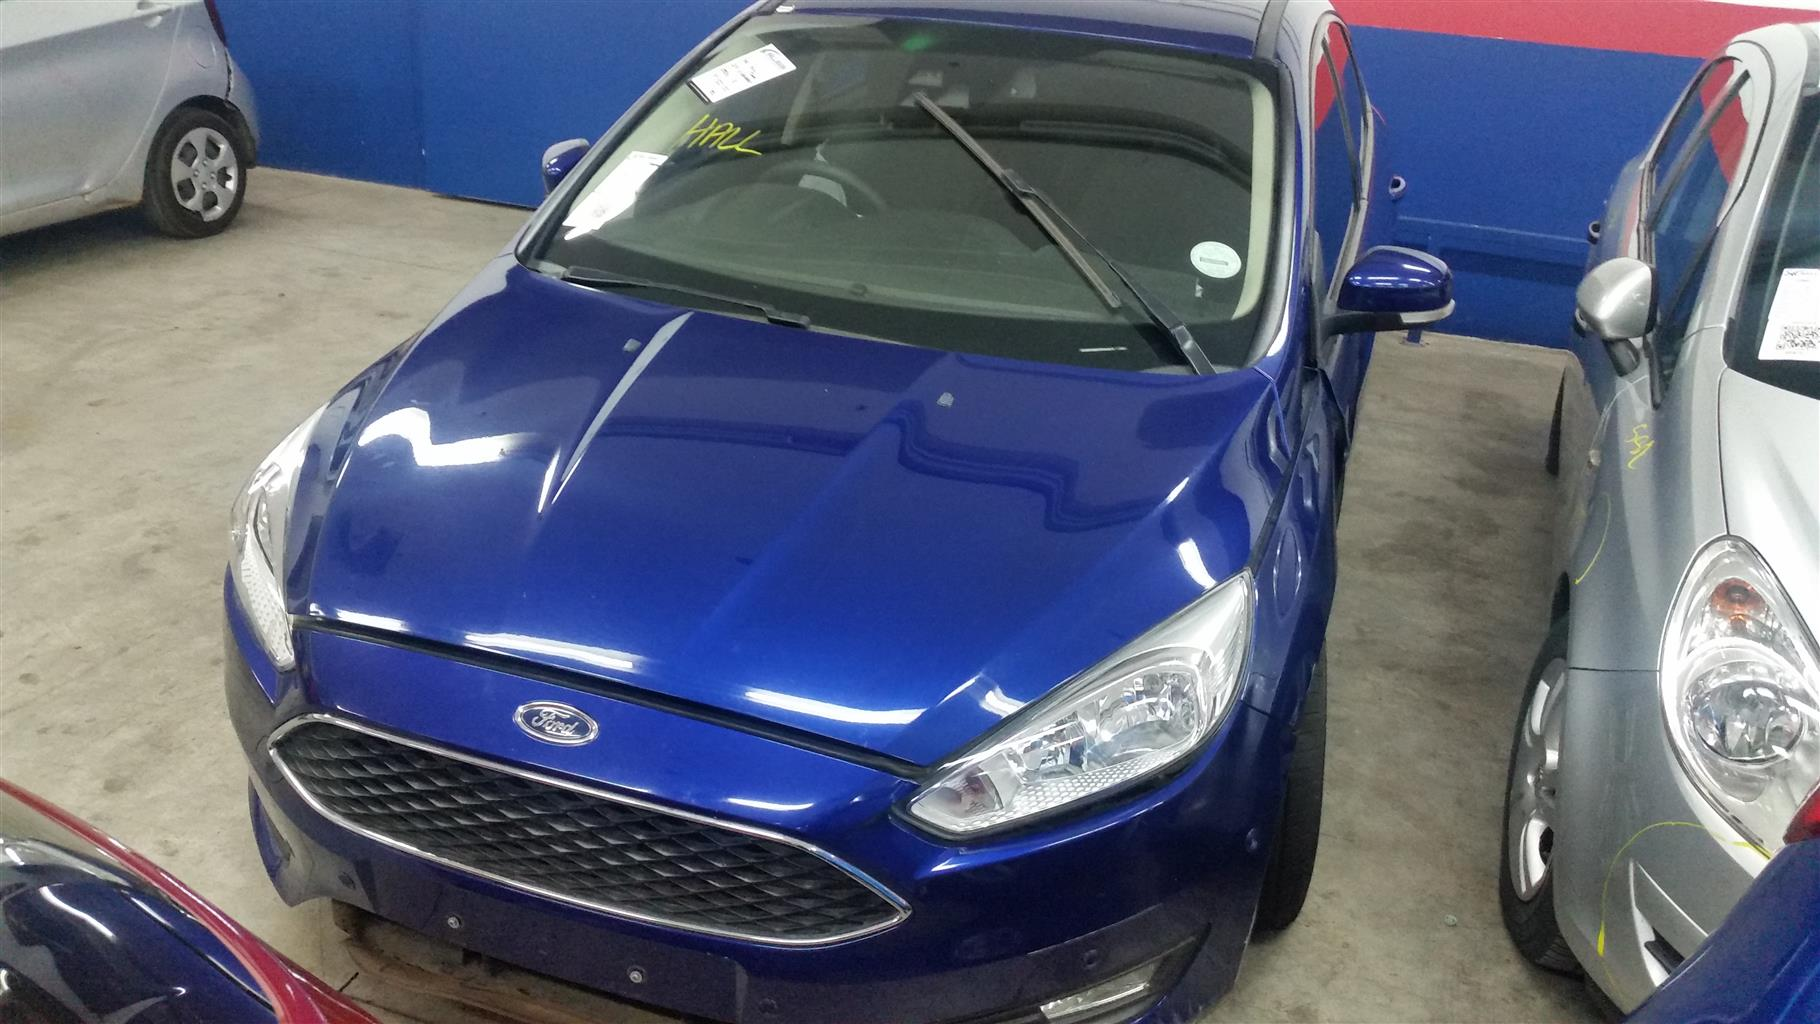 Ford Focus 2015 1.0 Eco Boost (REF IW25524)